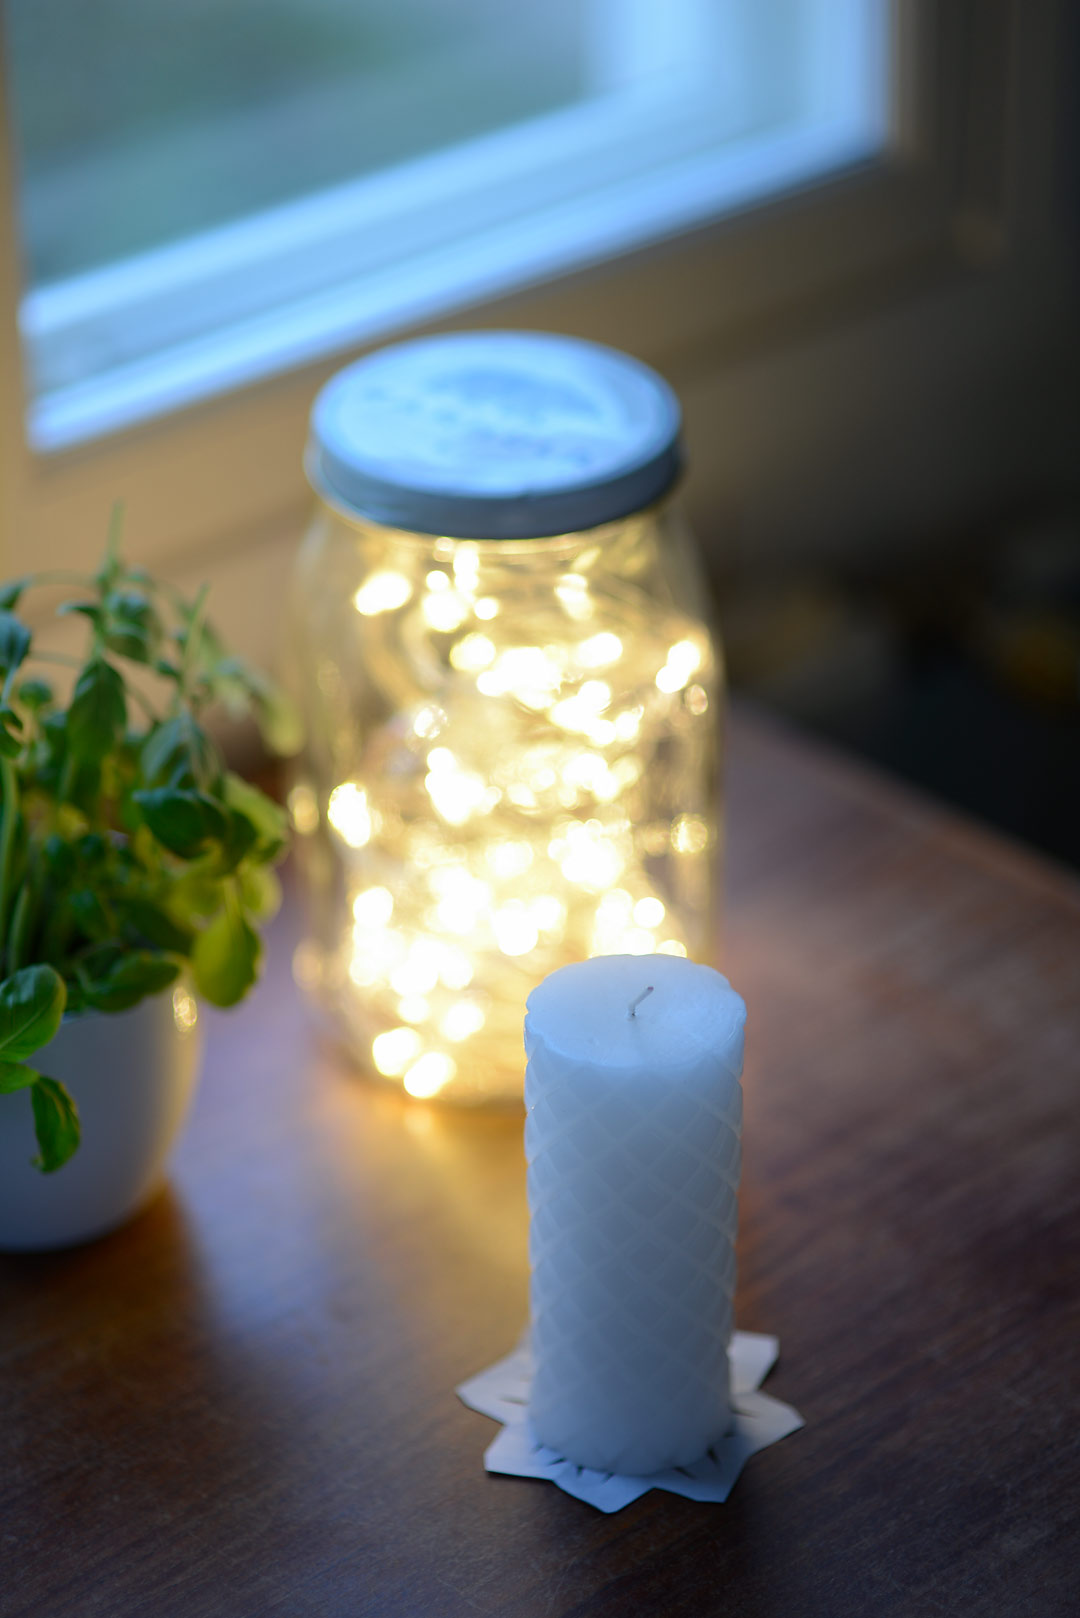 Fairy lights in a vintage glass jar